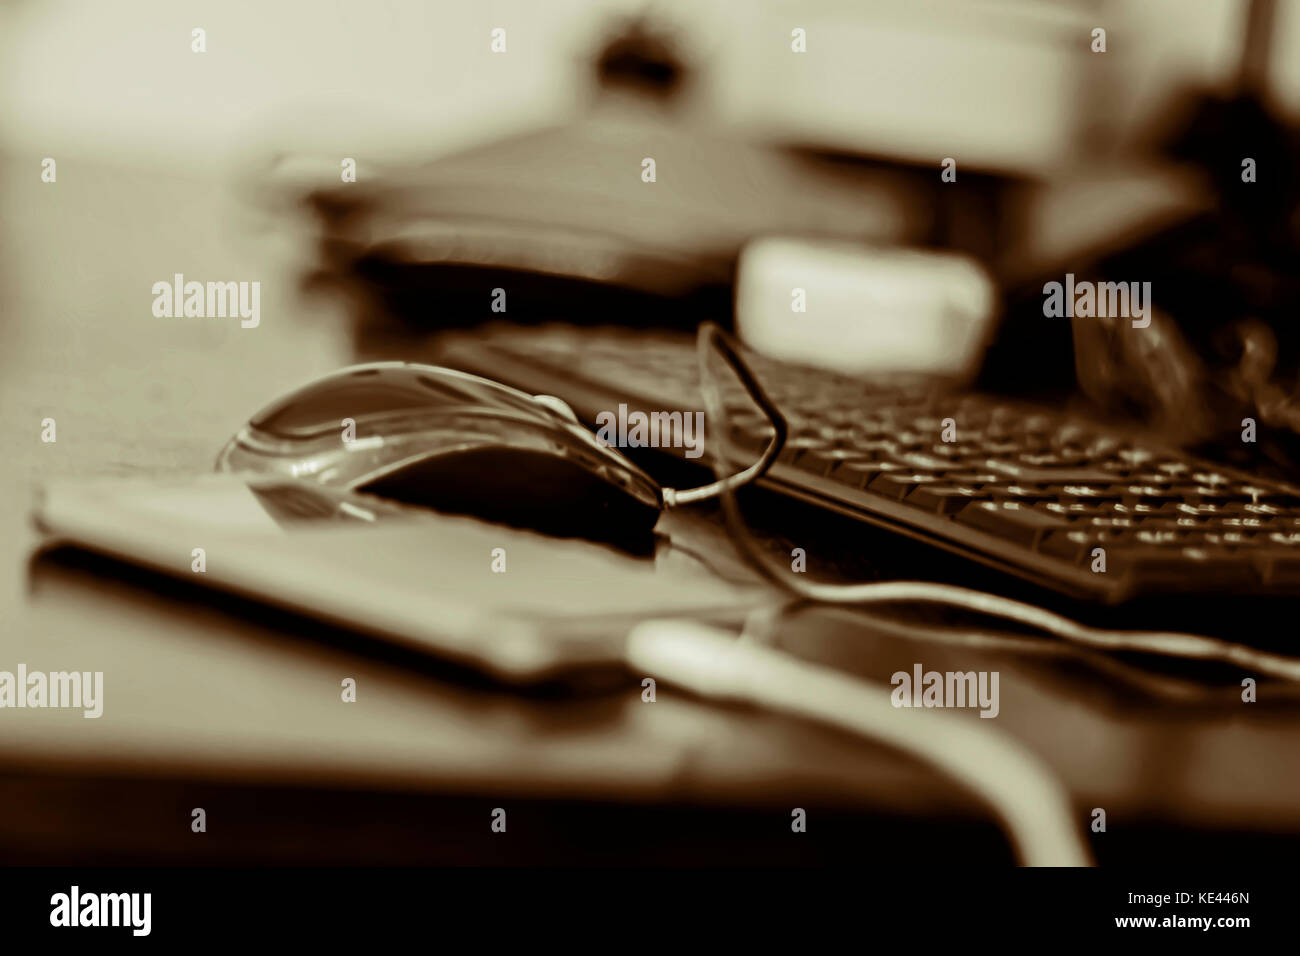 Working Space Mobile Phone Computer Mouse And Keyboard Wallpaper Stock Photo Alamy